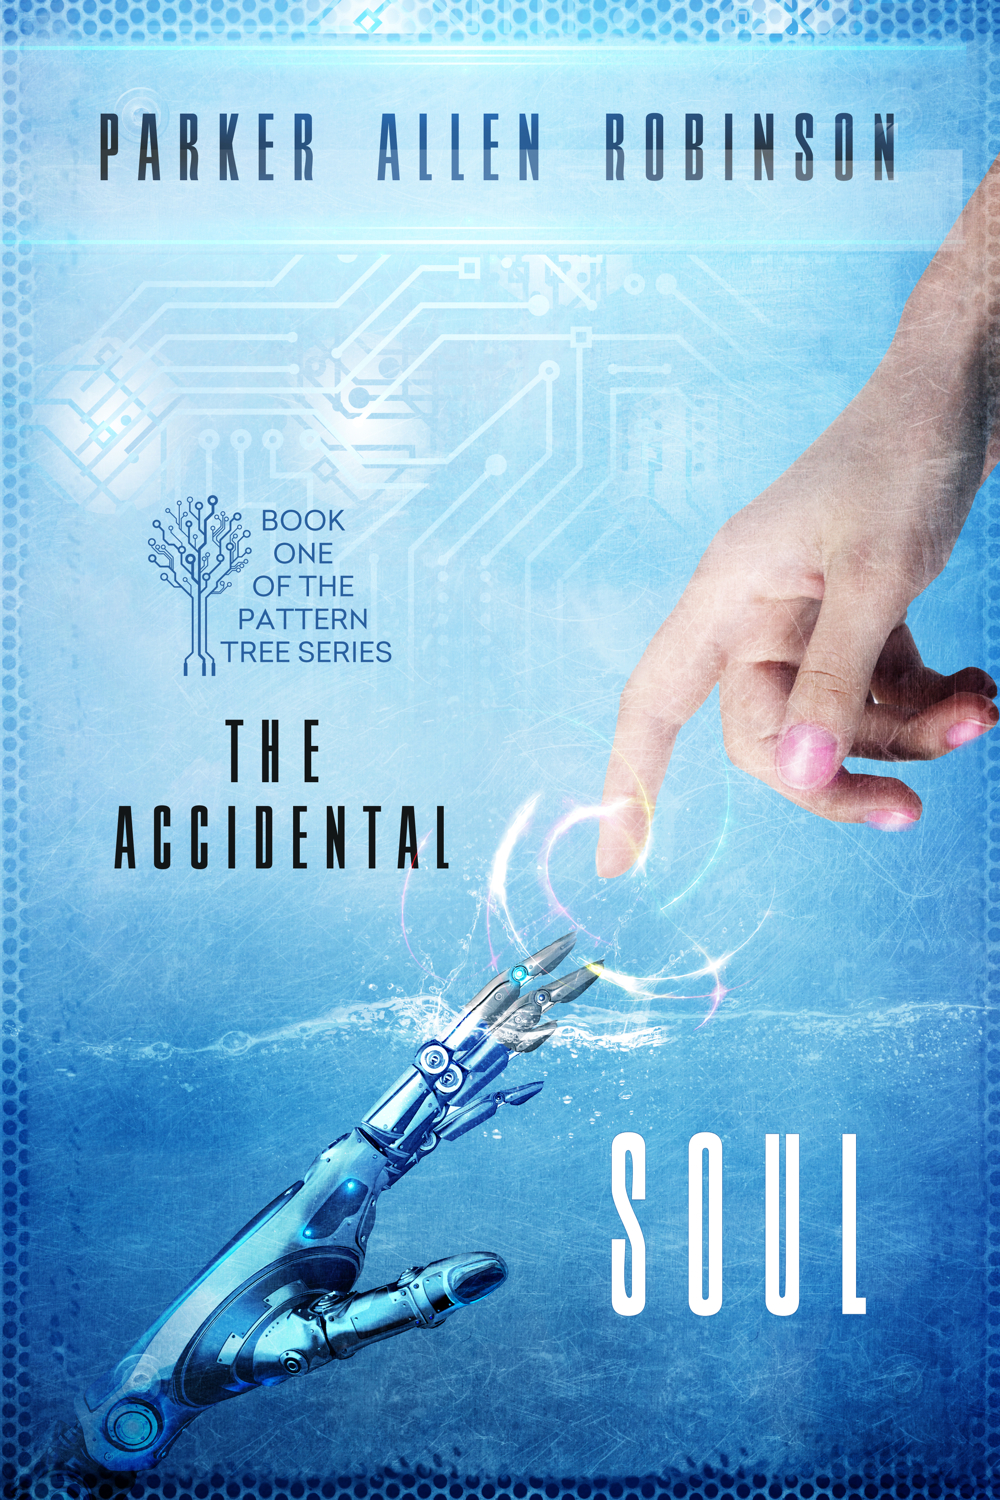 Science Book Cover Design Examples ~ The accidental soul science fiction book cover design